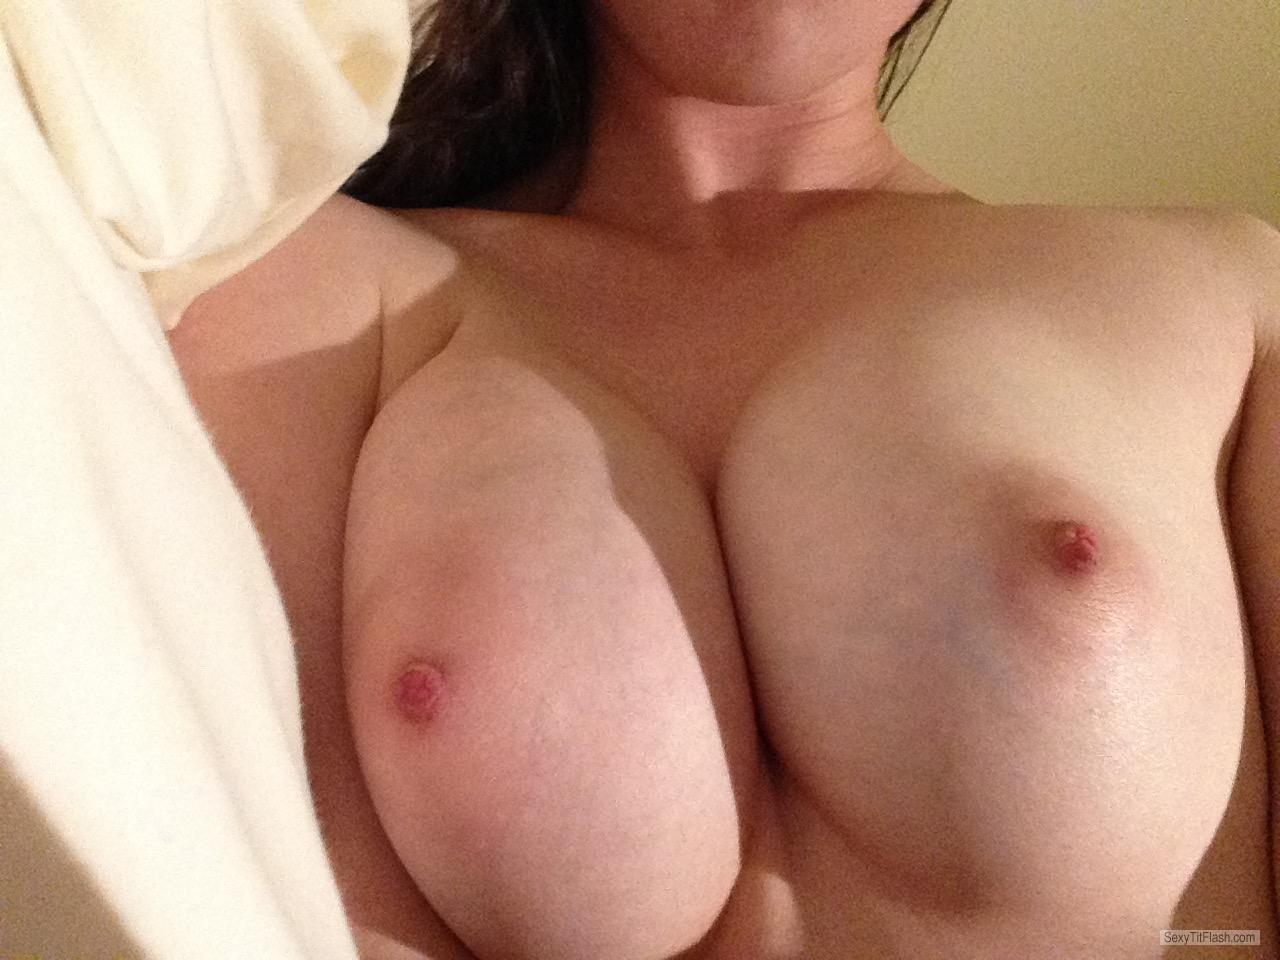 My Big Tits Imhorny